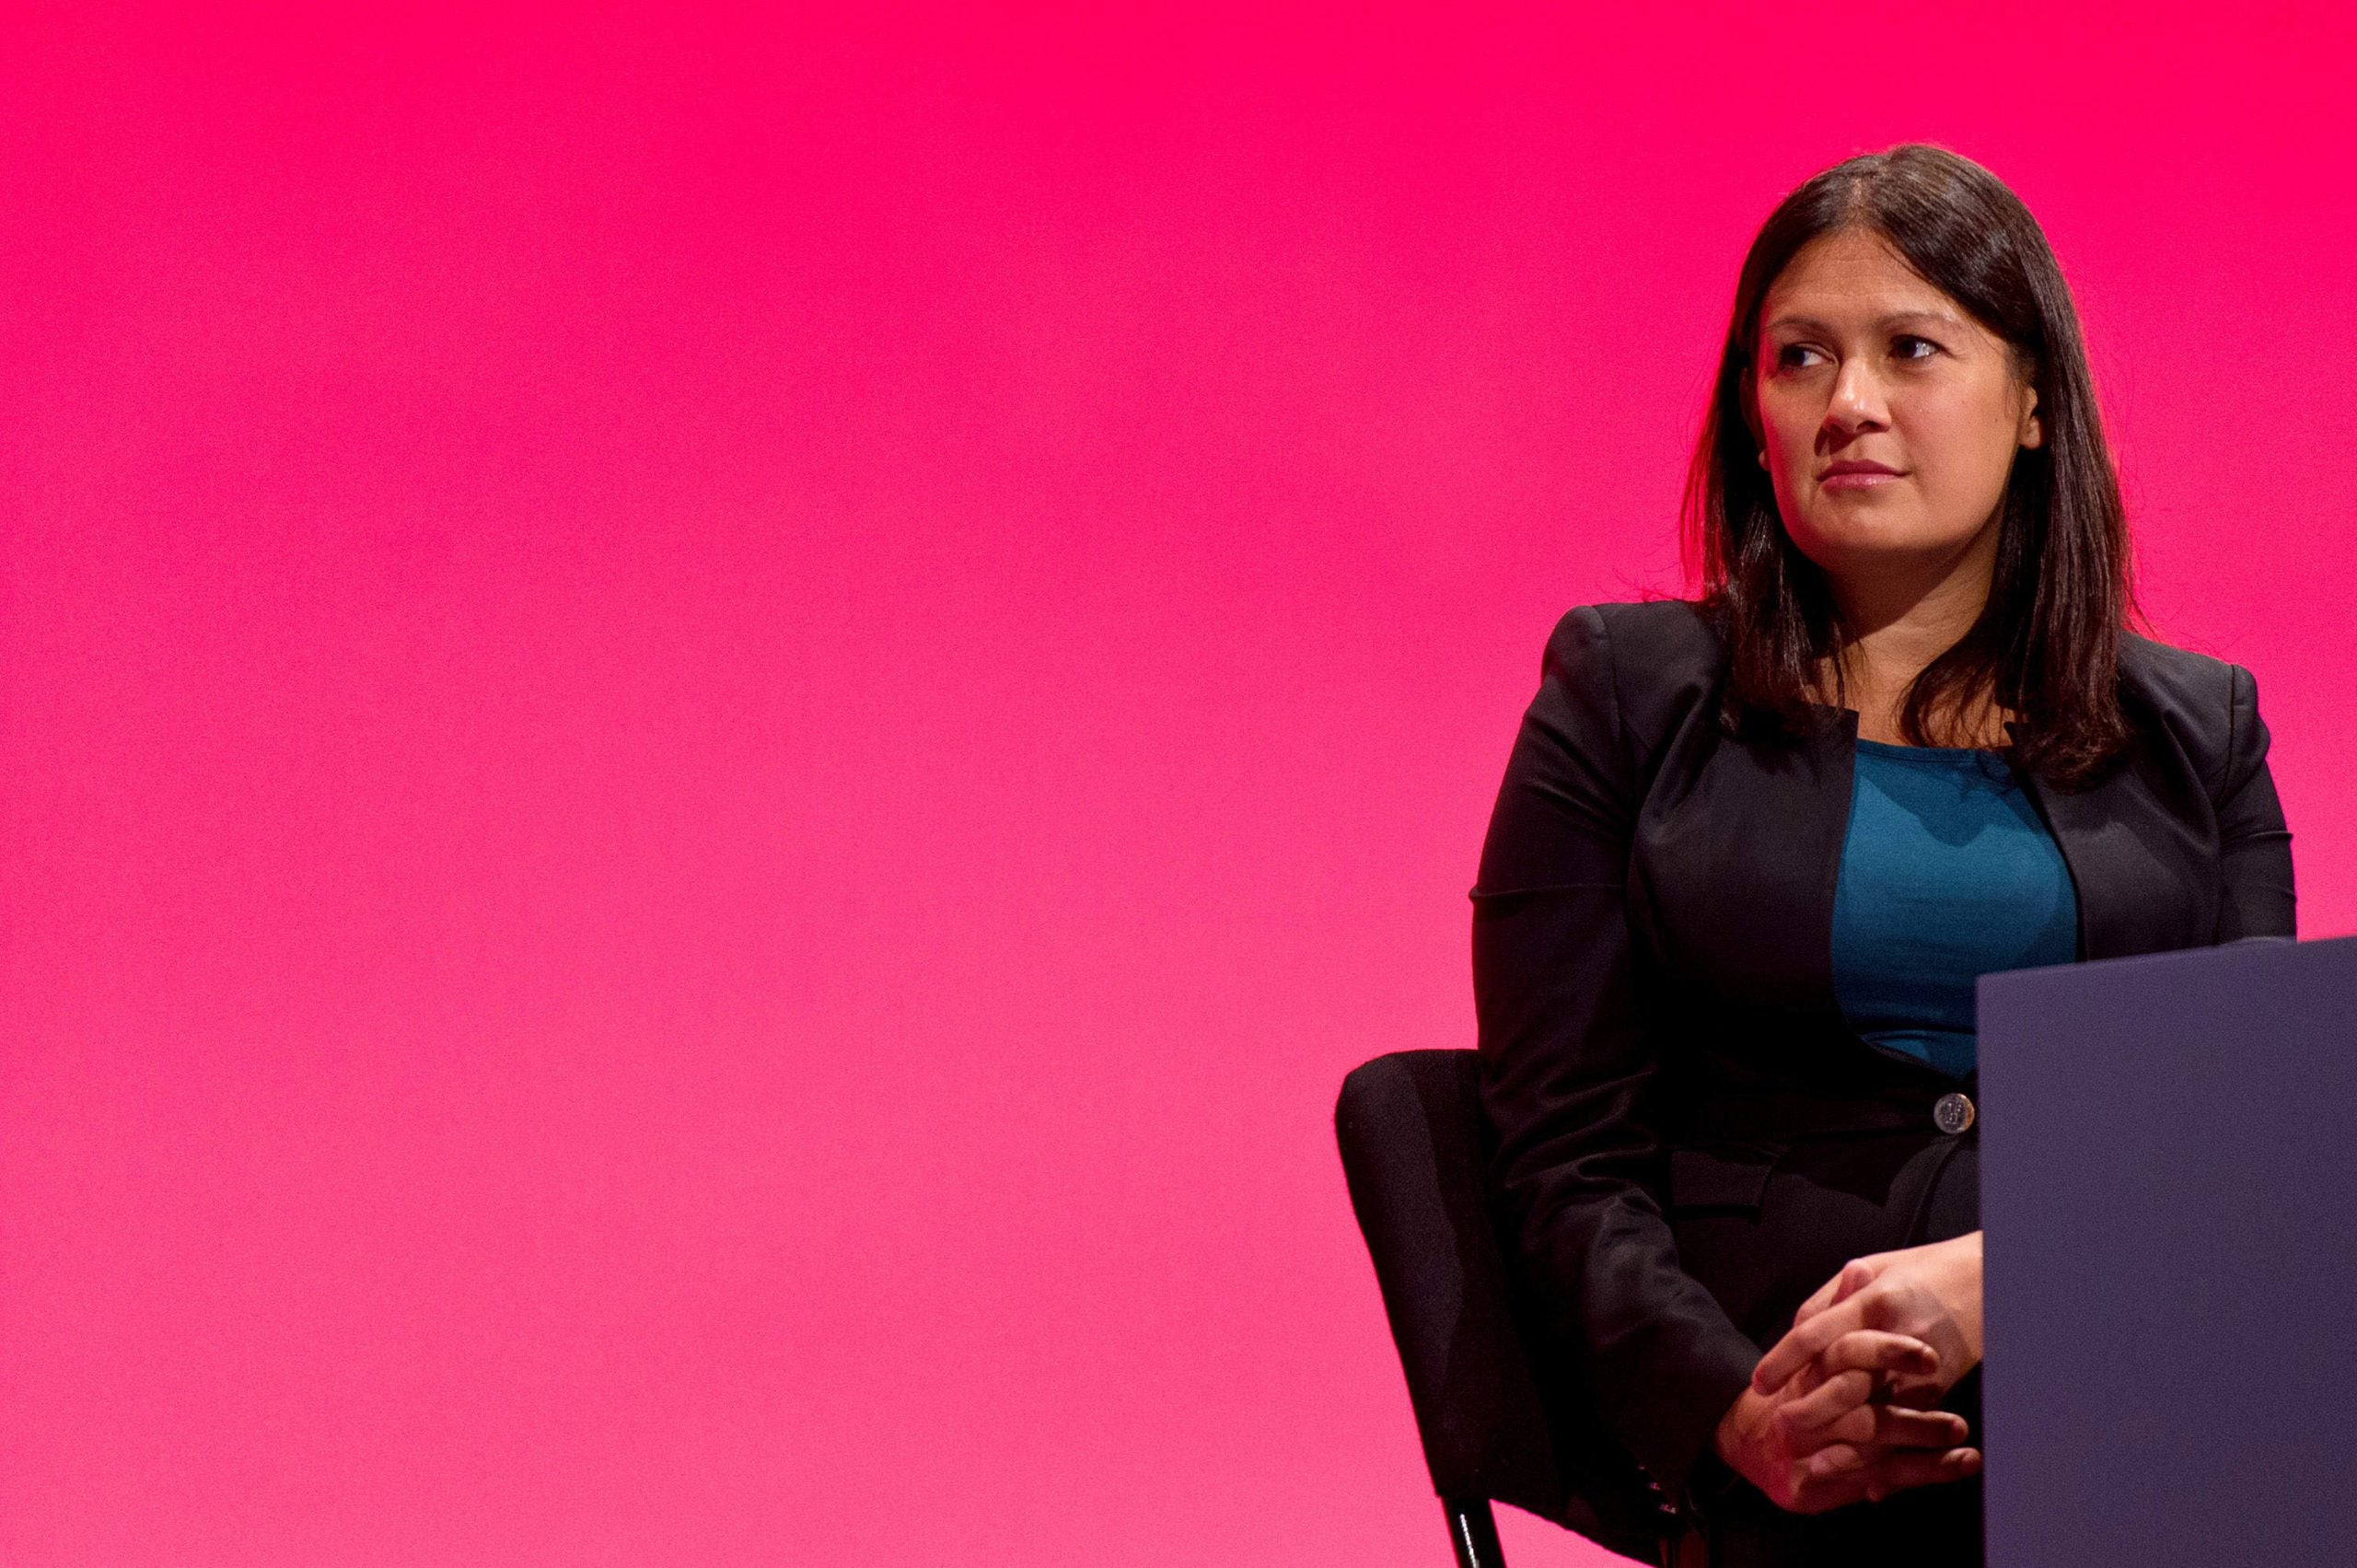 New Times: Lisa Nandy on how Labour has been halted and hollowed out